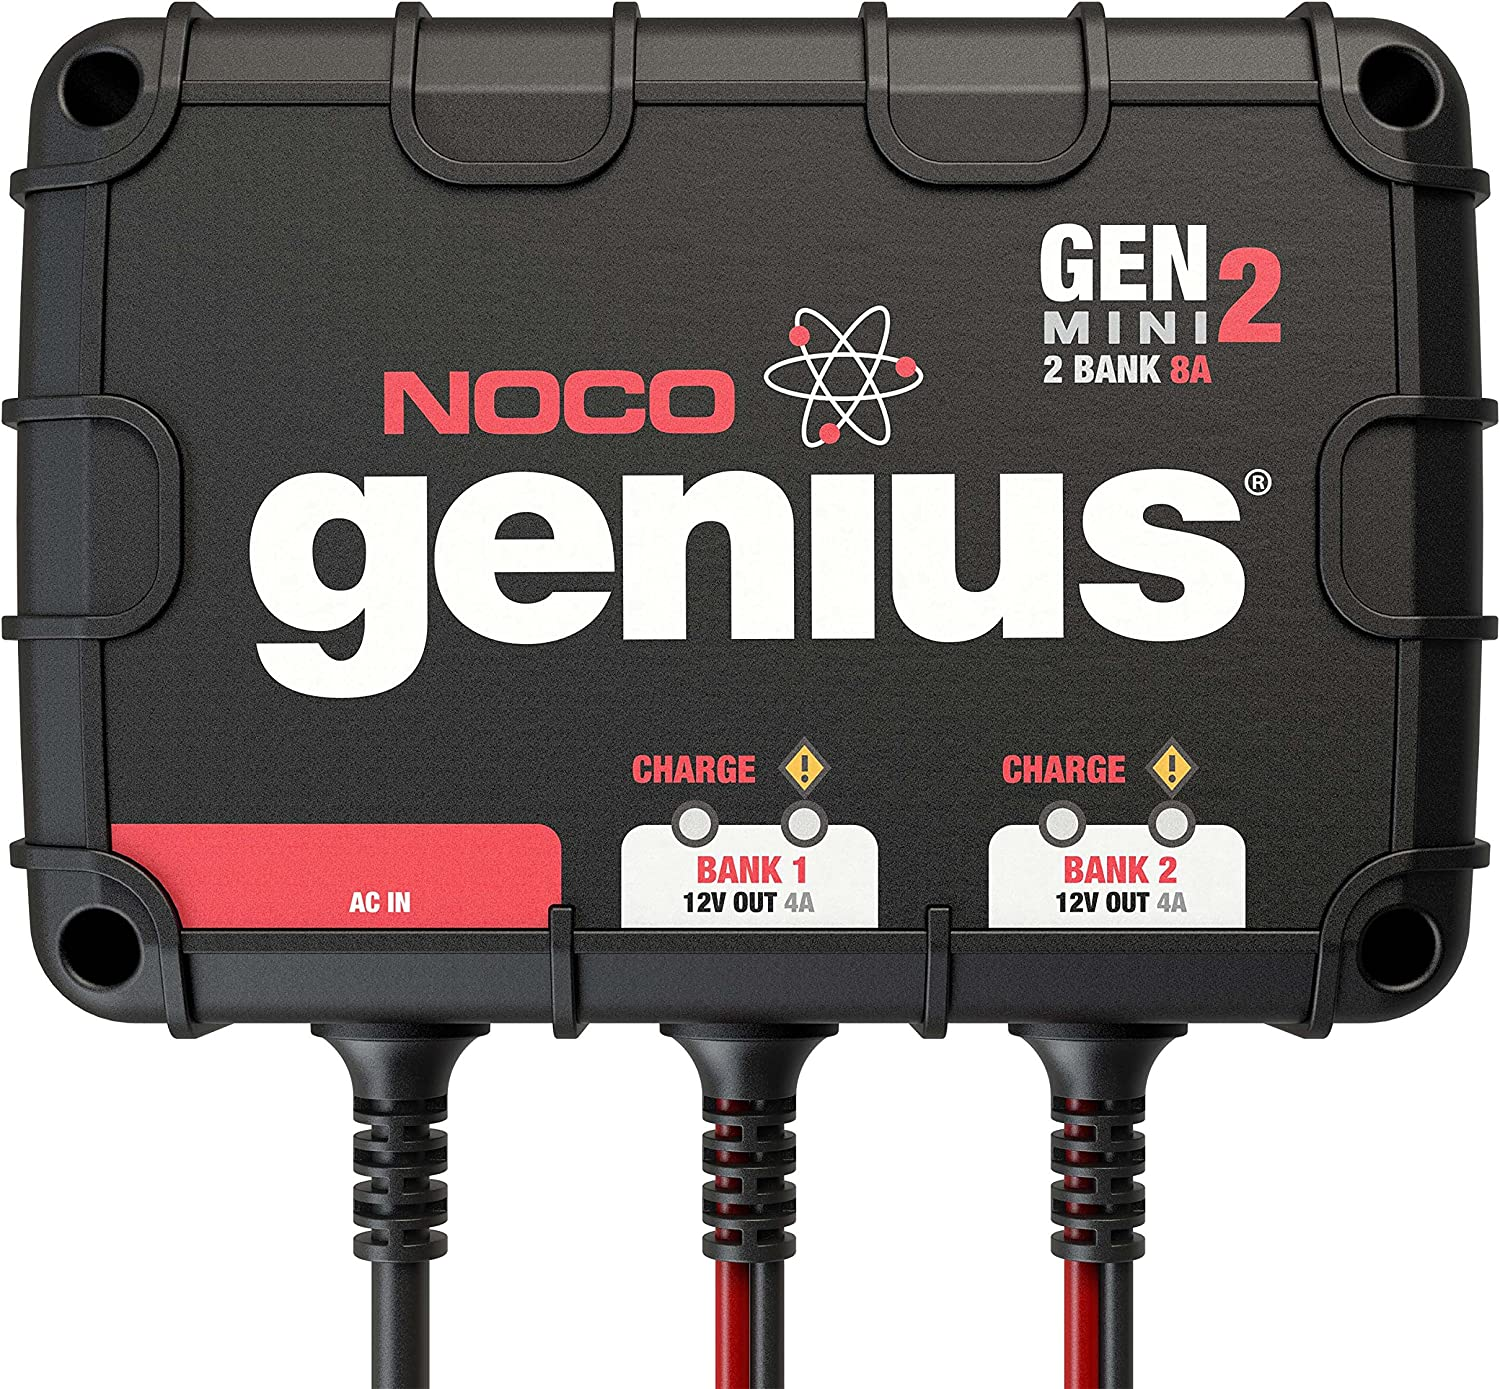 NOCO Genius GENM2 Battery Charger